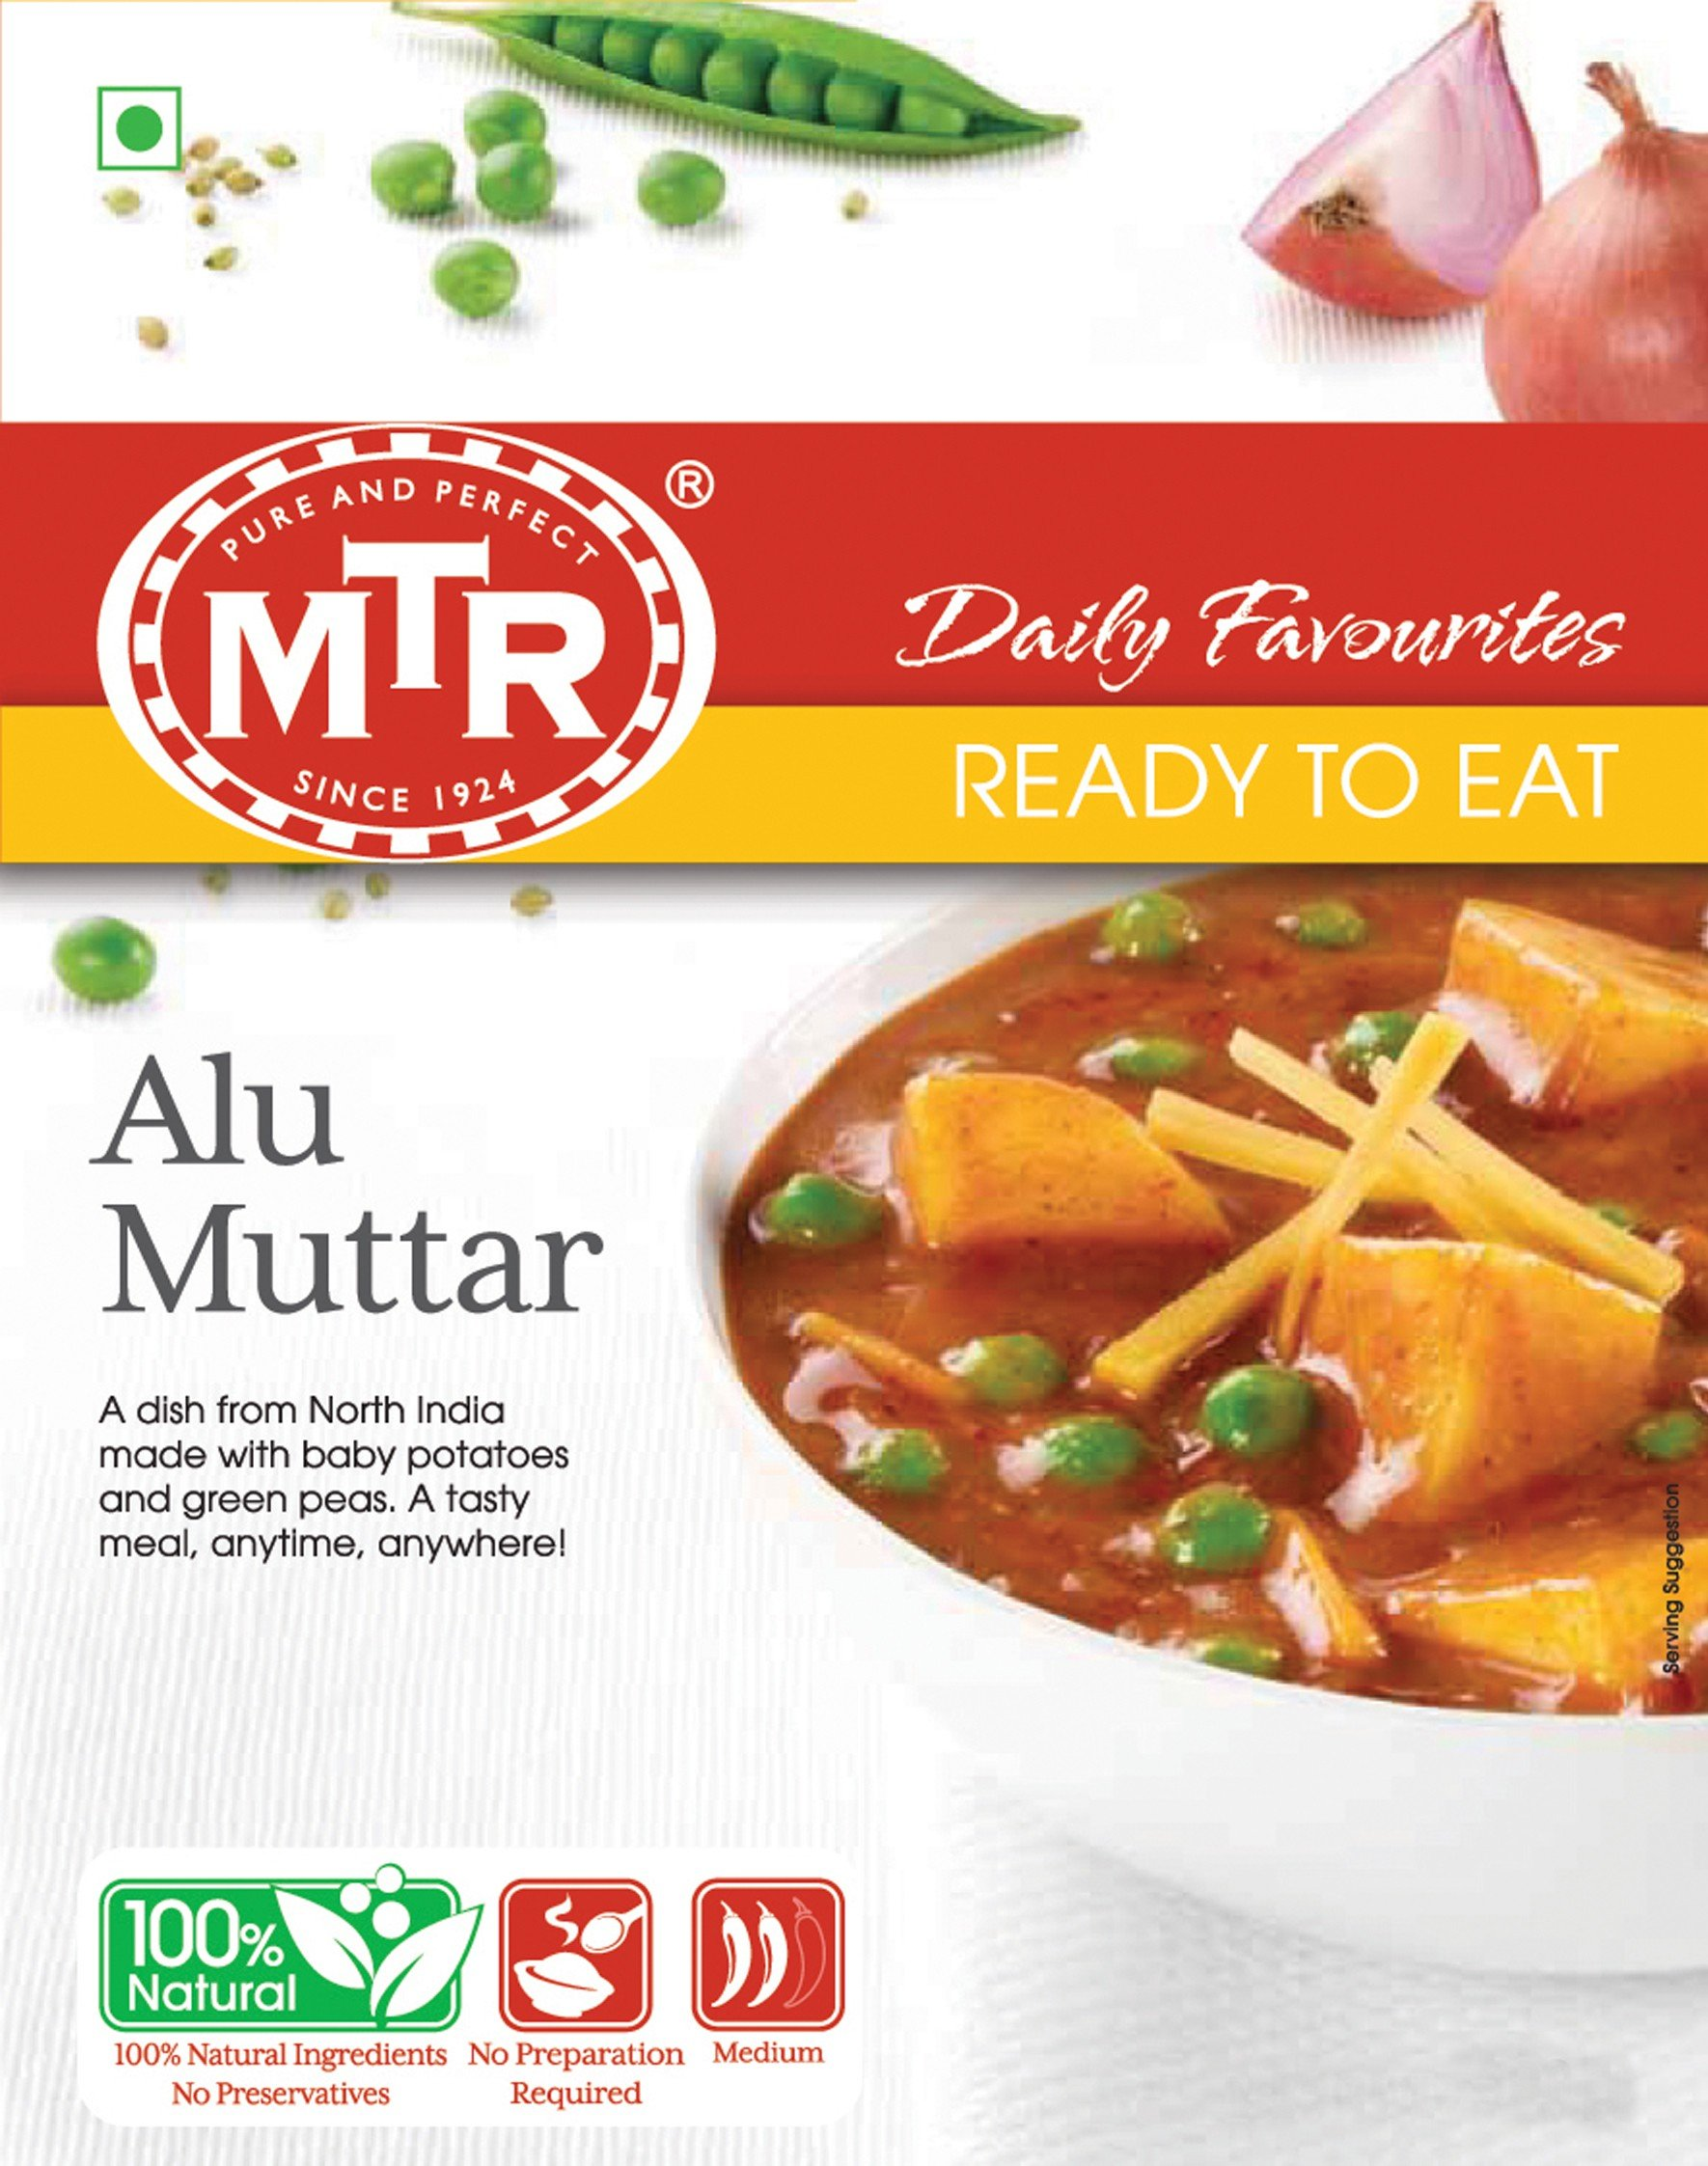 MTR Alu Muttar 300g-10.5oz Ready to Eat 100% Natural No Preservatives